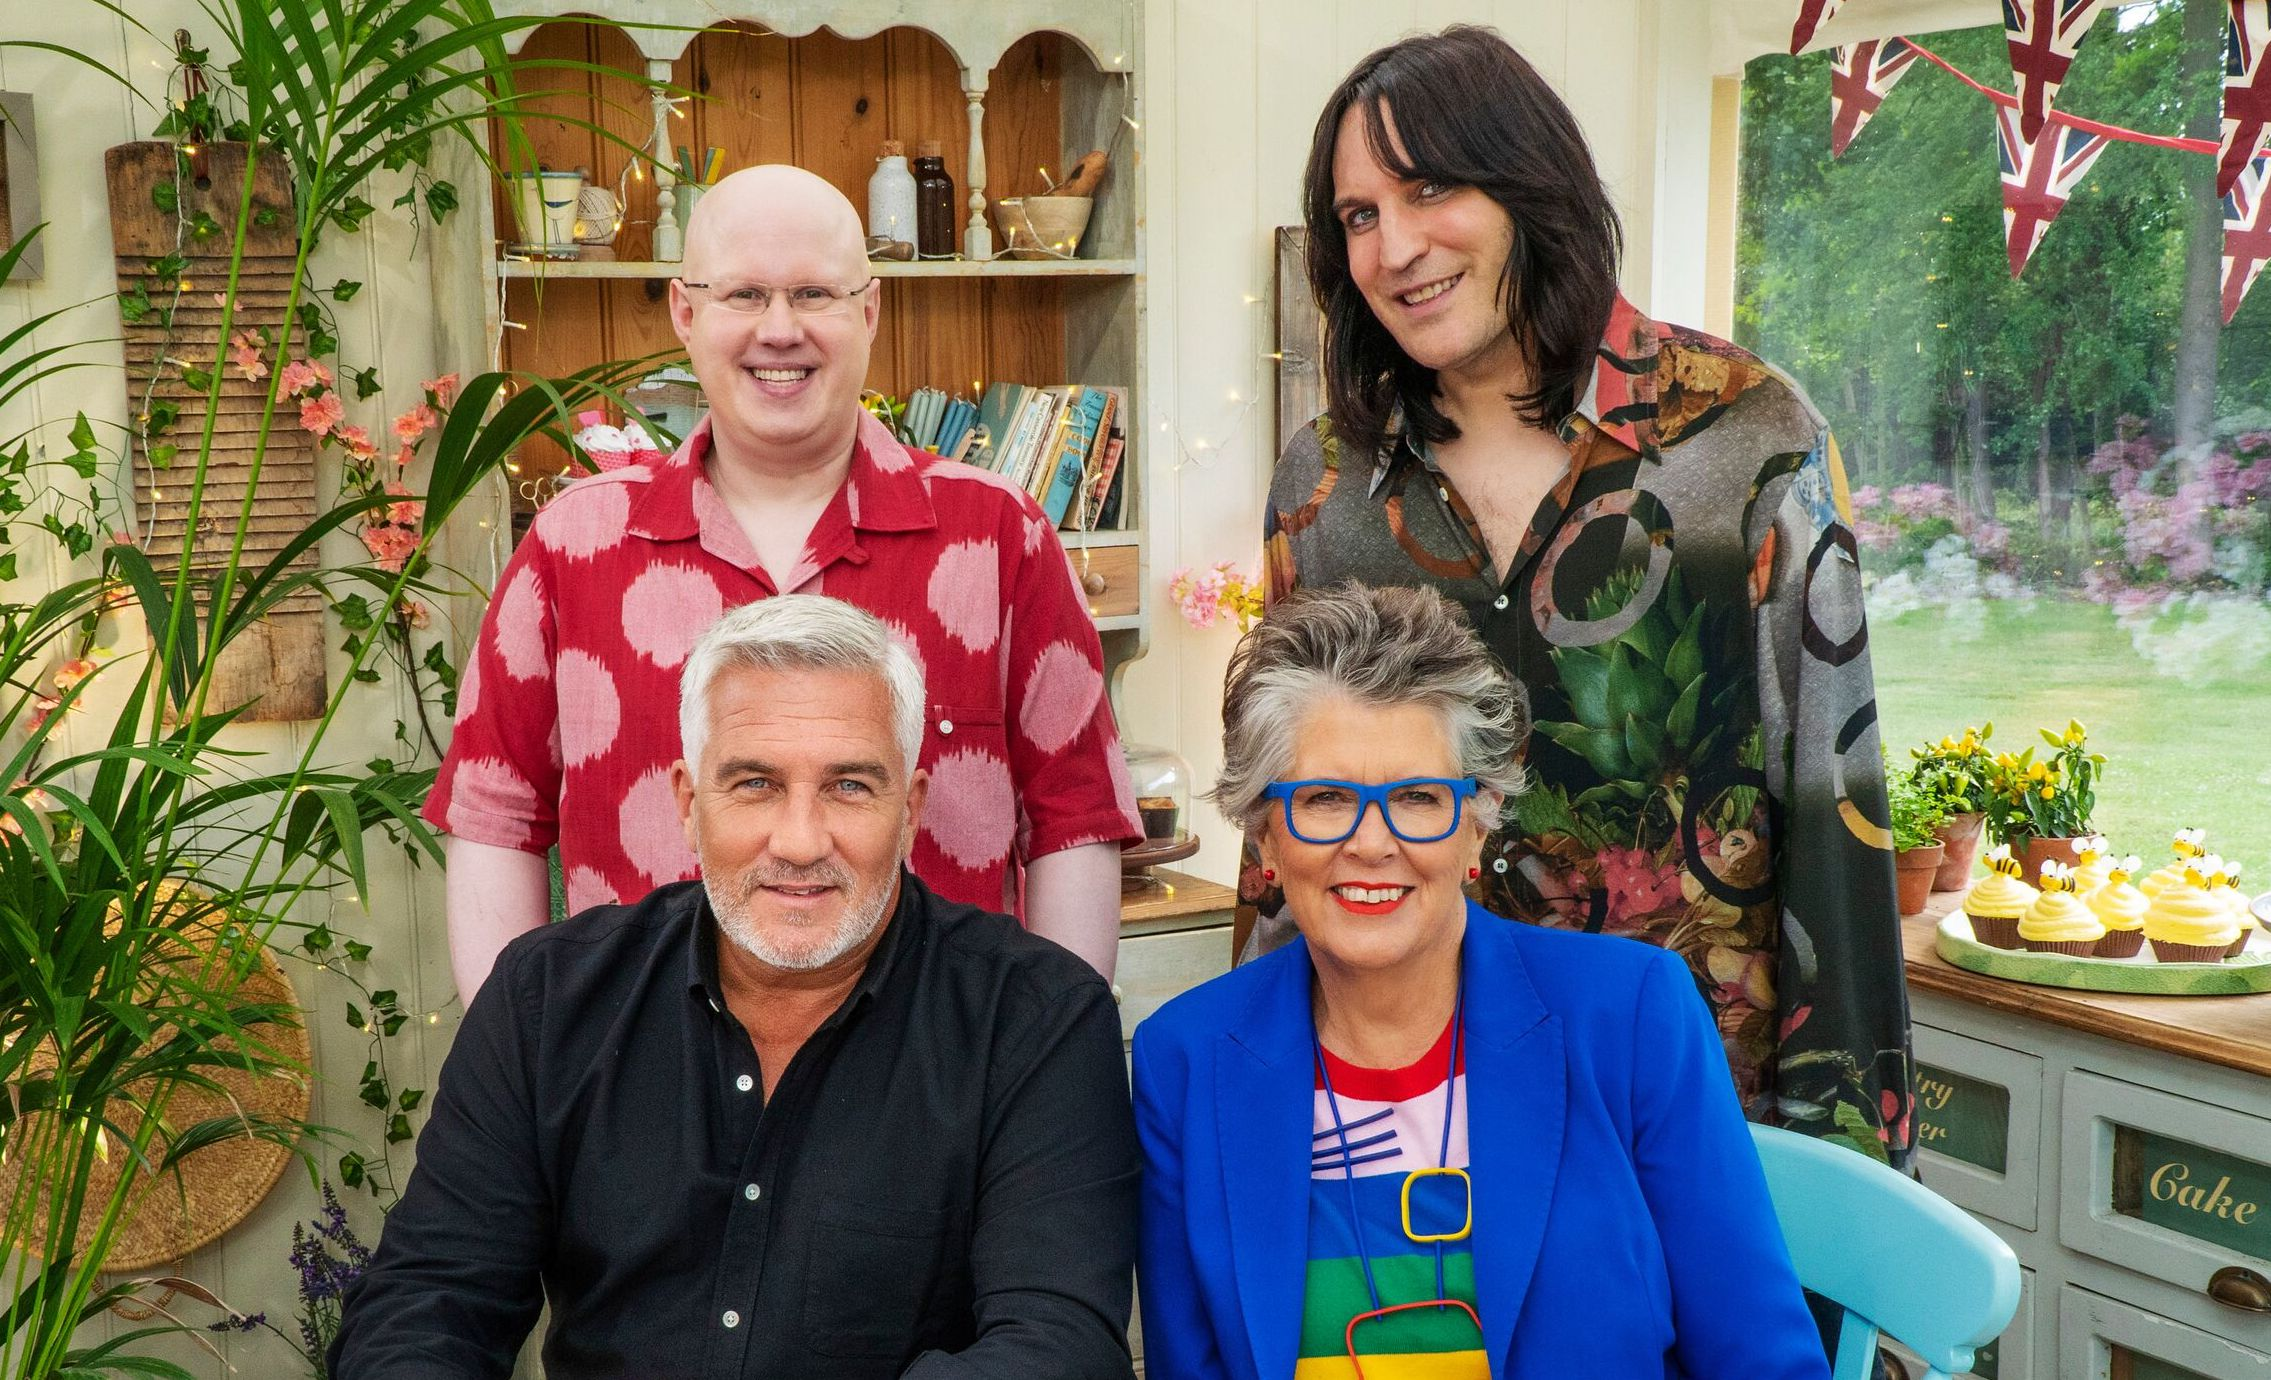 Great British Bake off judges and presenters for series 11 of Channel 4 show